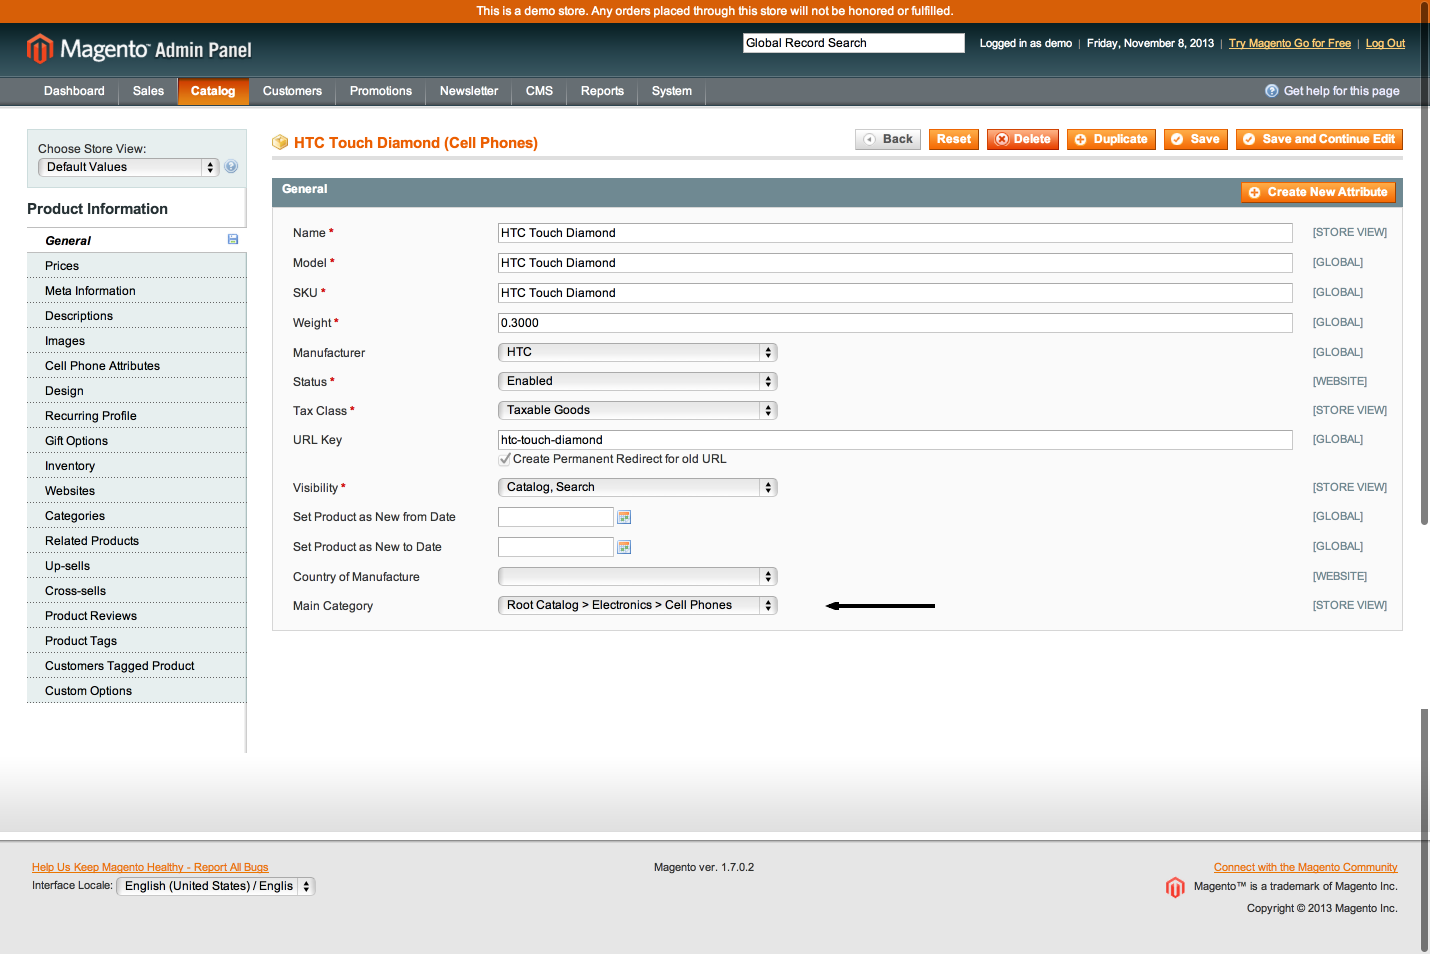 Selection of Main Category in Magento Backoffice